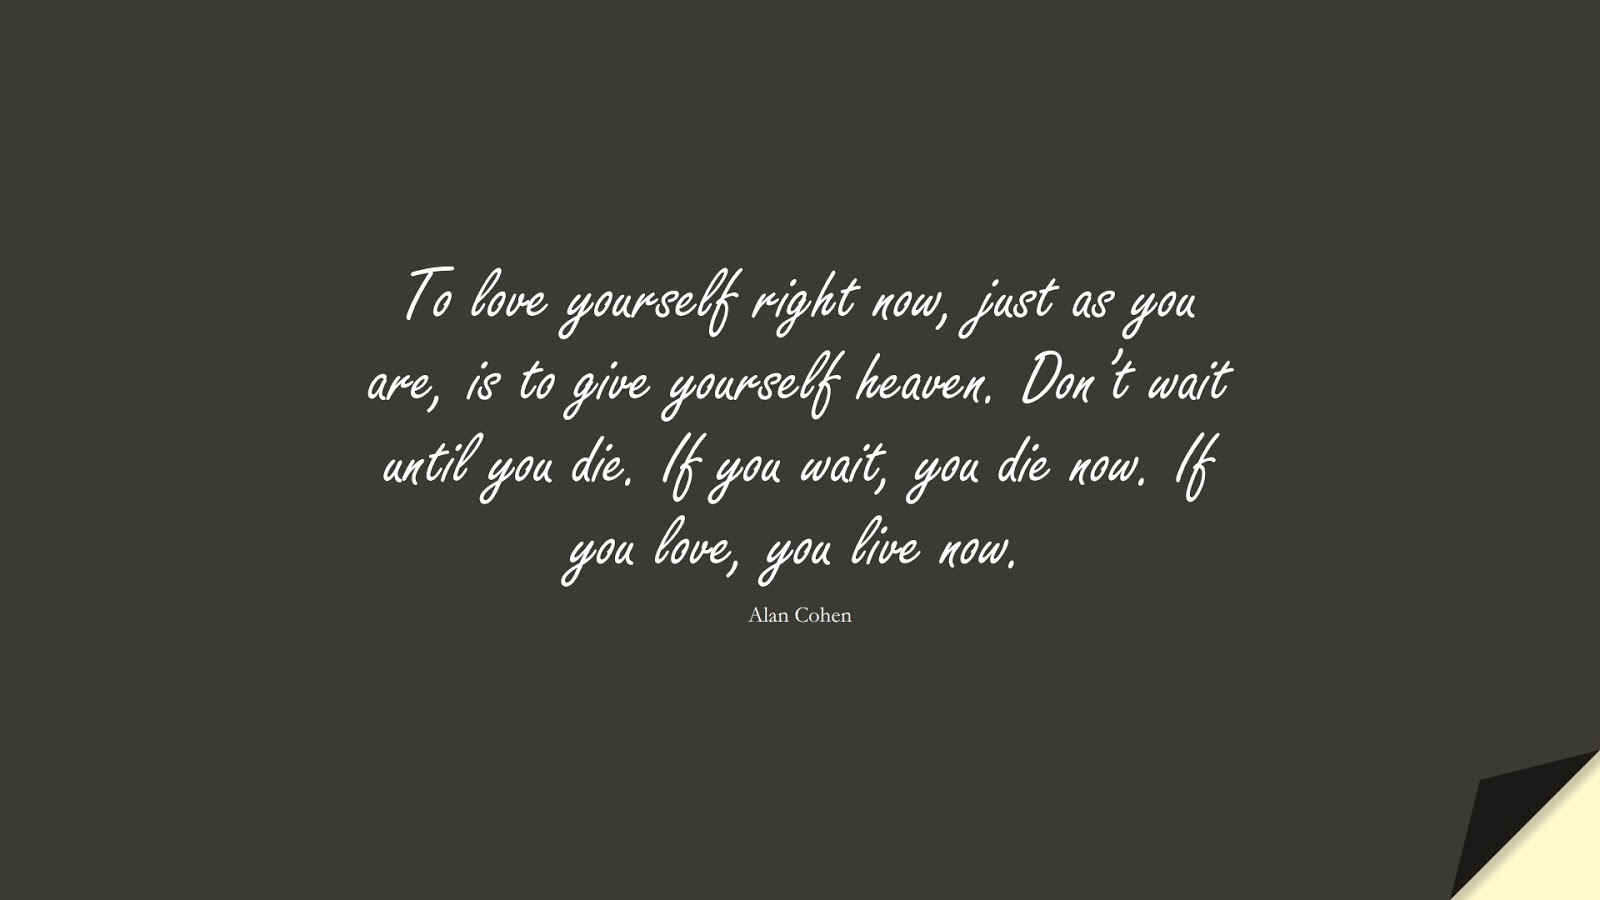 To love yourself right now, just as you are, is to give yourself heaven. Don't wait until you die. If you wait, you die now. If you love, you live now. (Alan Cohen);  #InspirationalQuotes